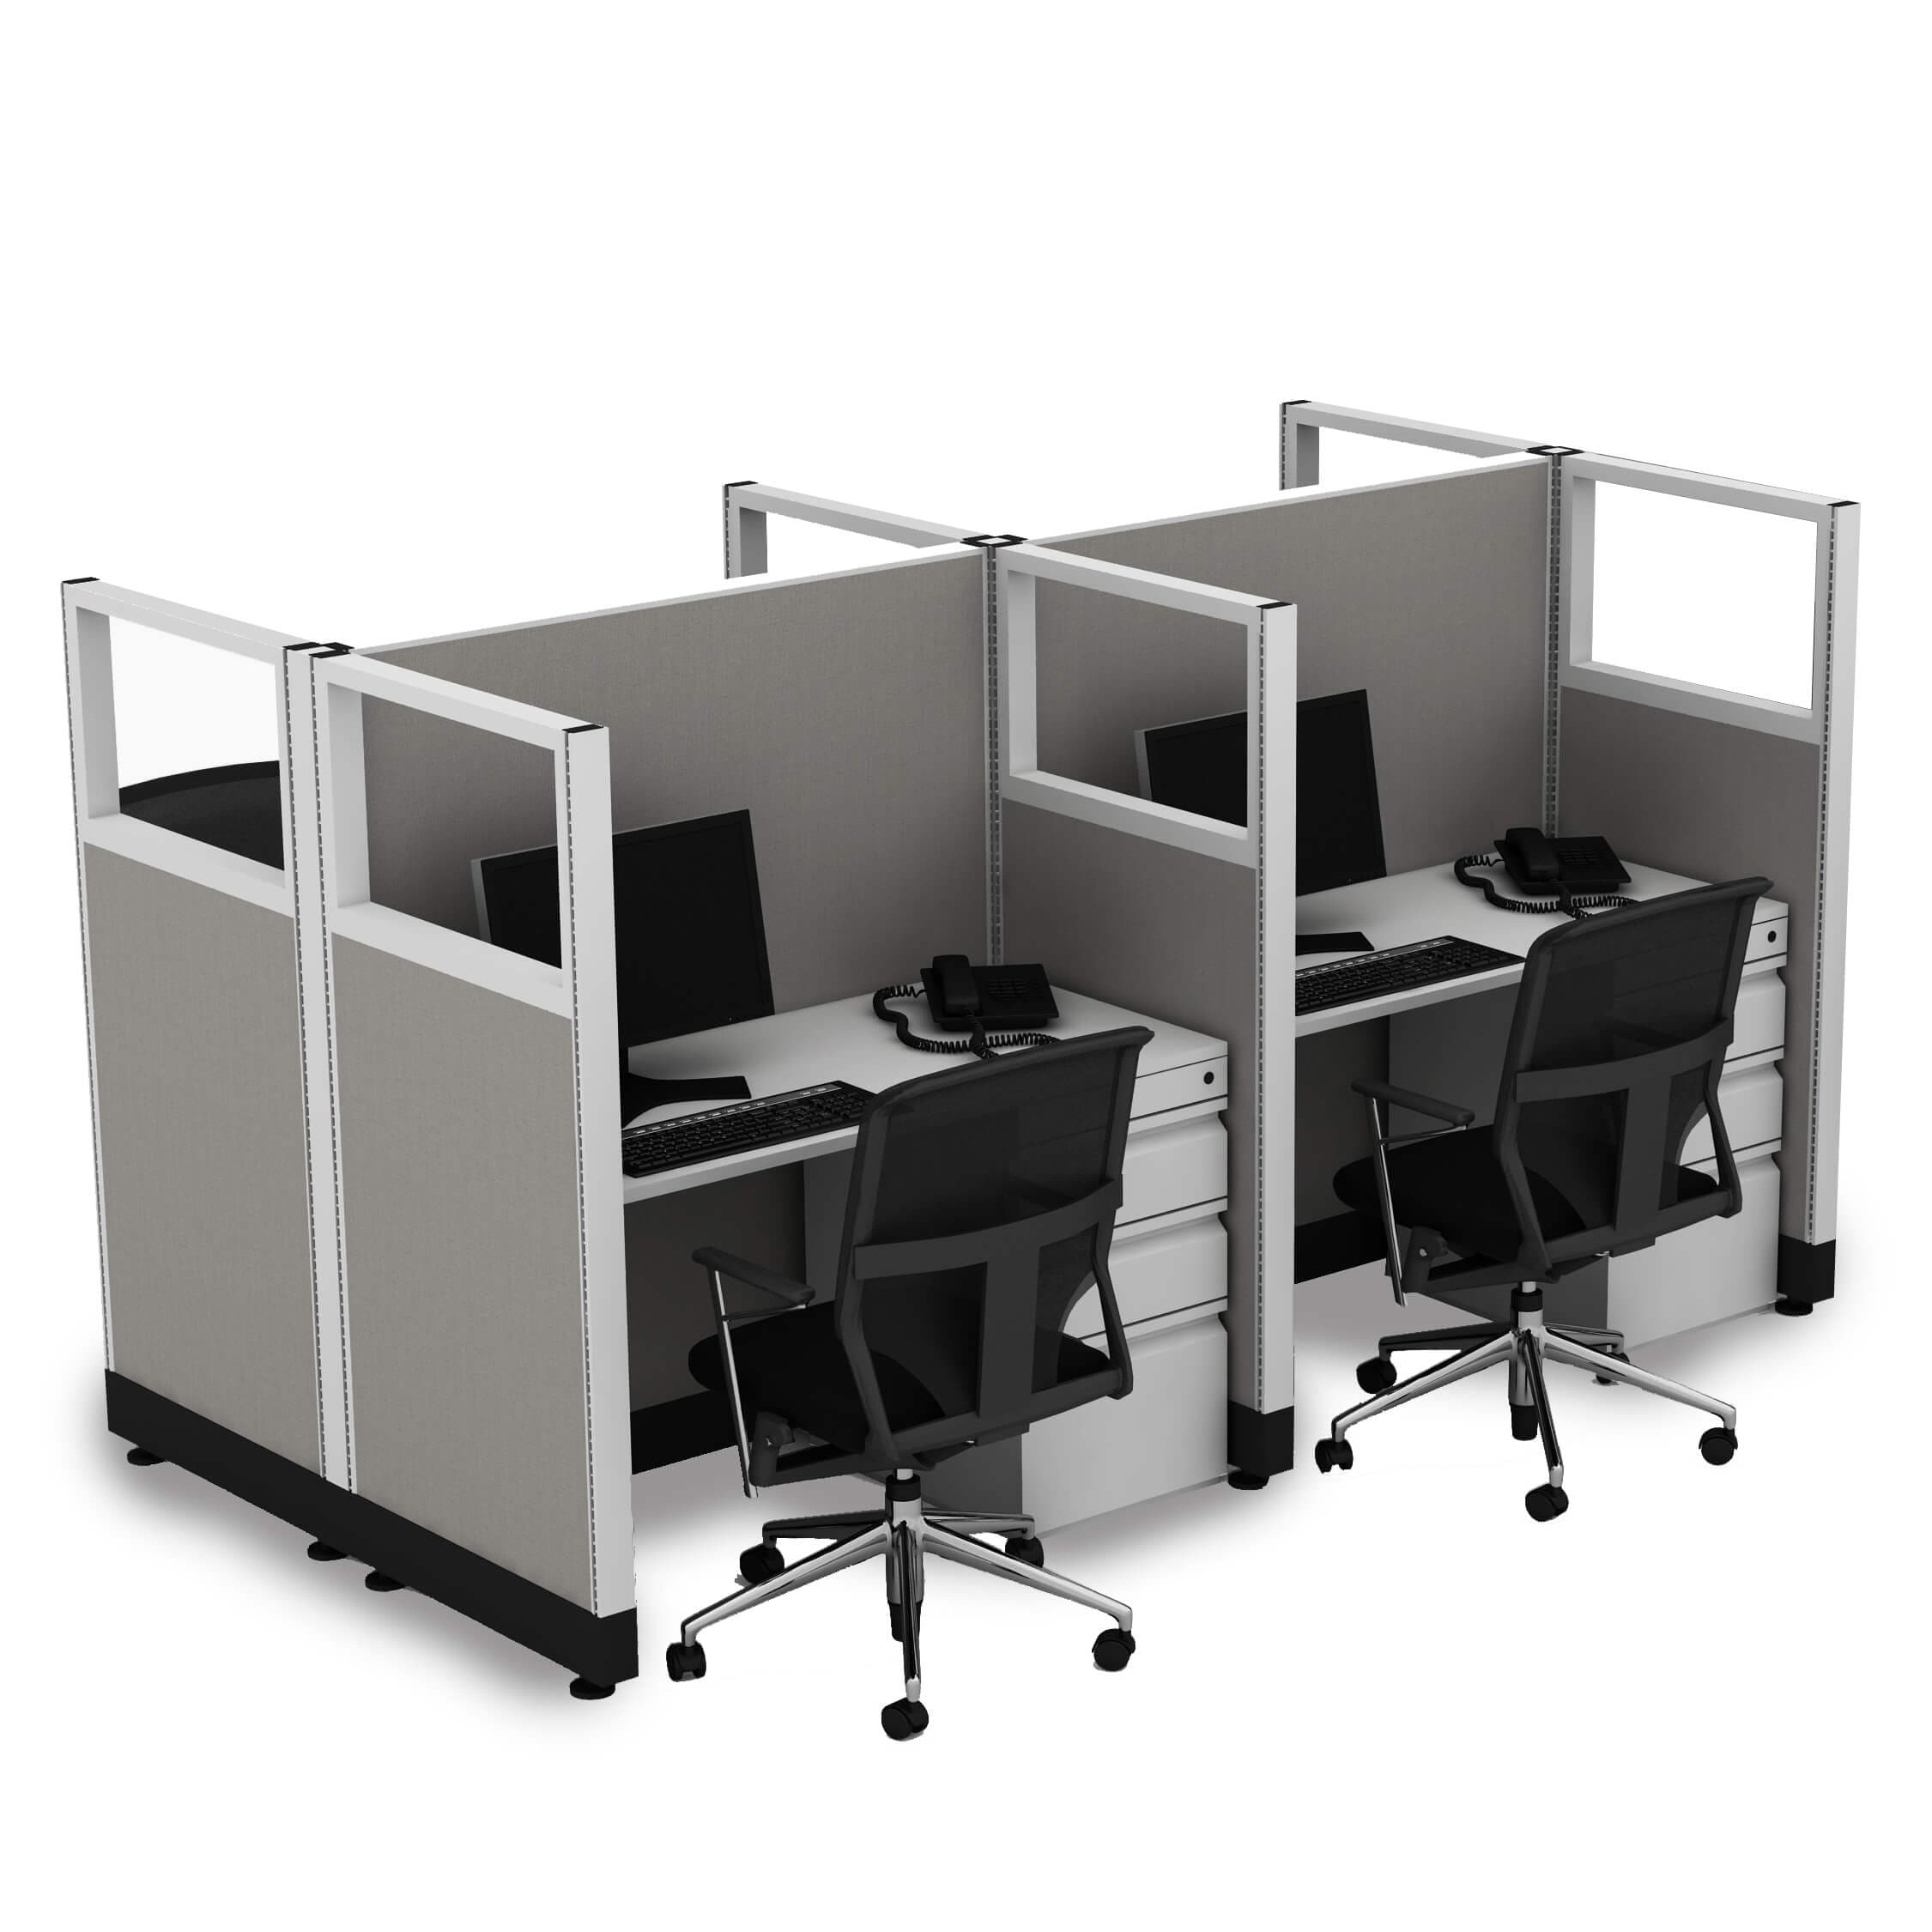 Cubicle Workstations 53H 4pack Cluster Powered (3x4 - White Desk Silver Paint - Assembled)